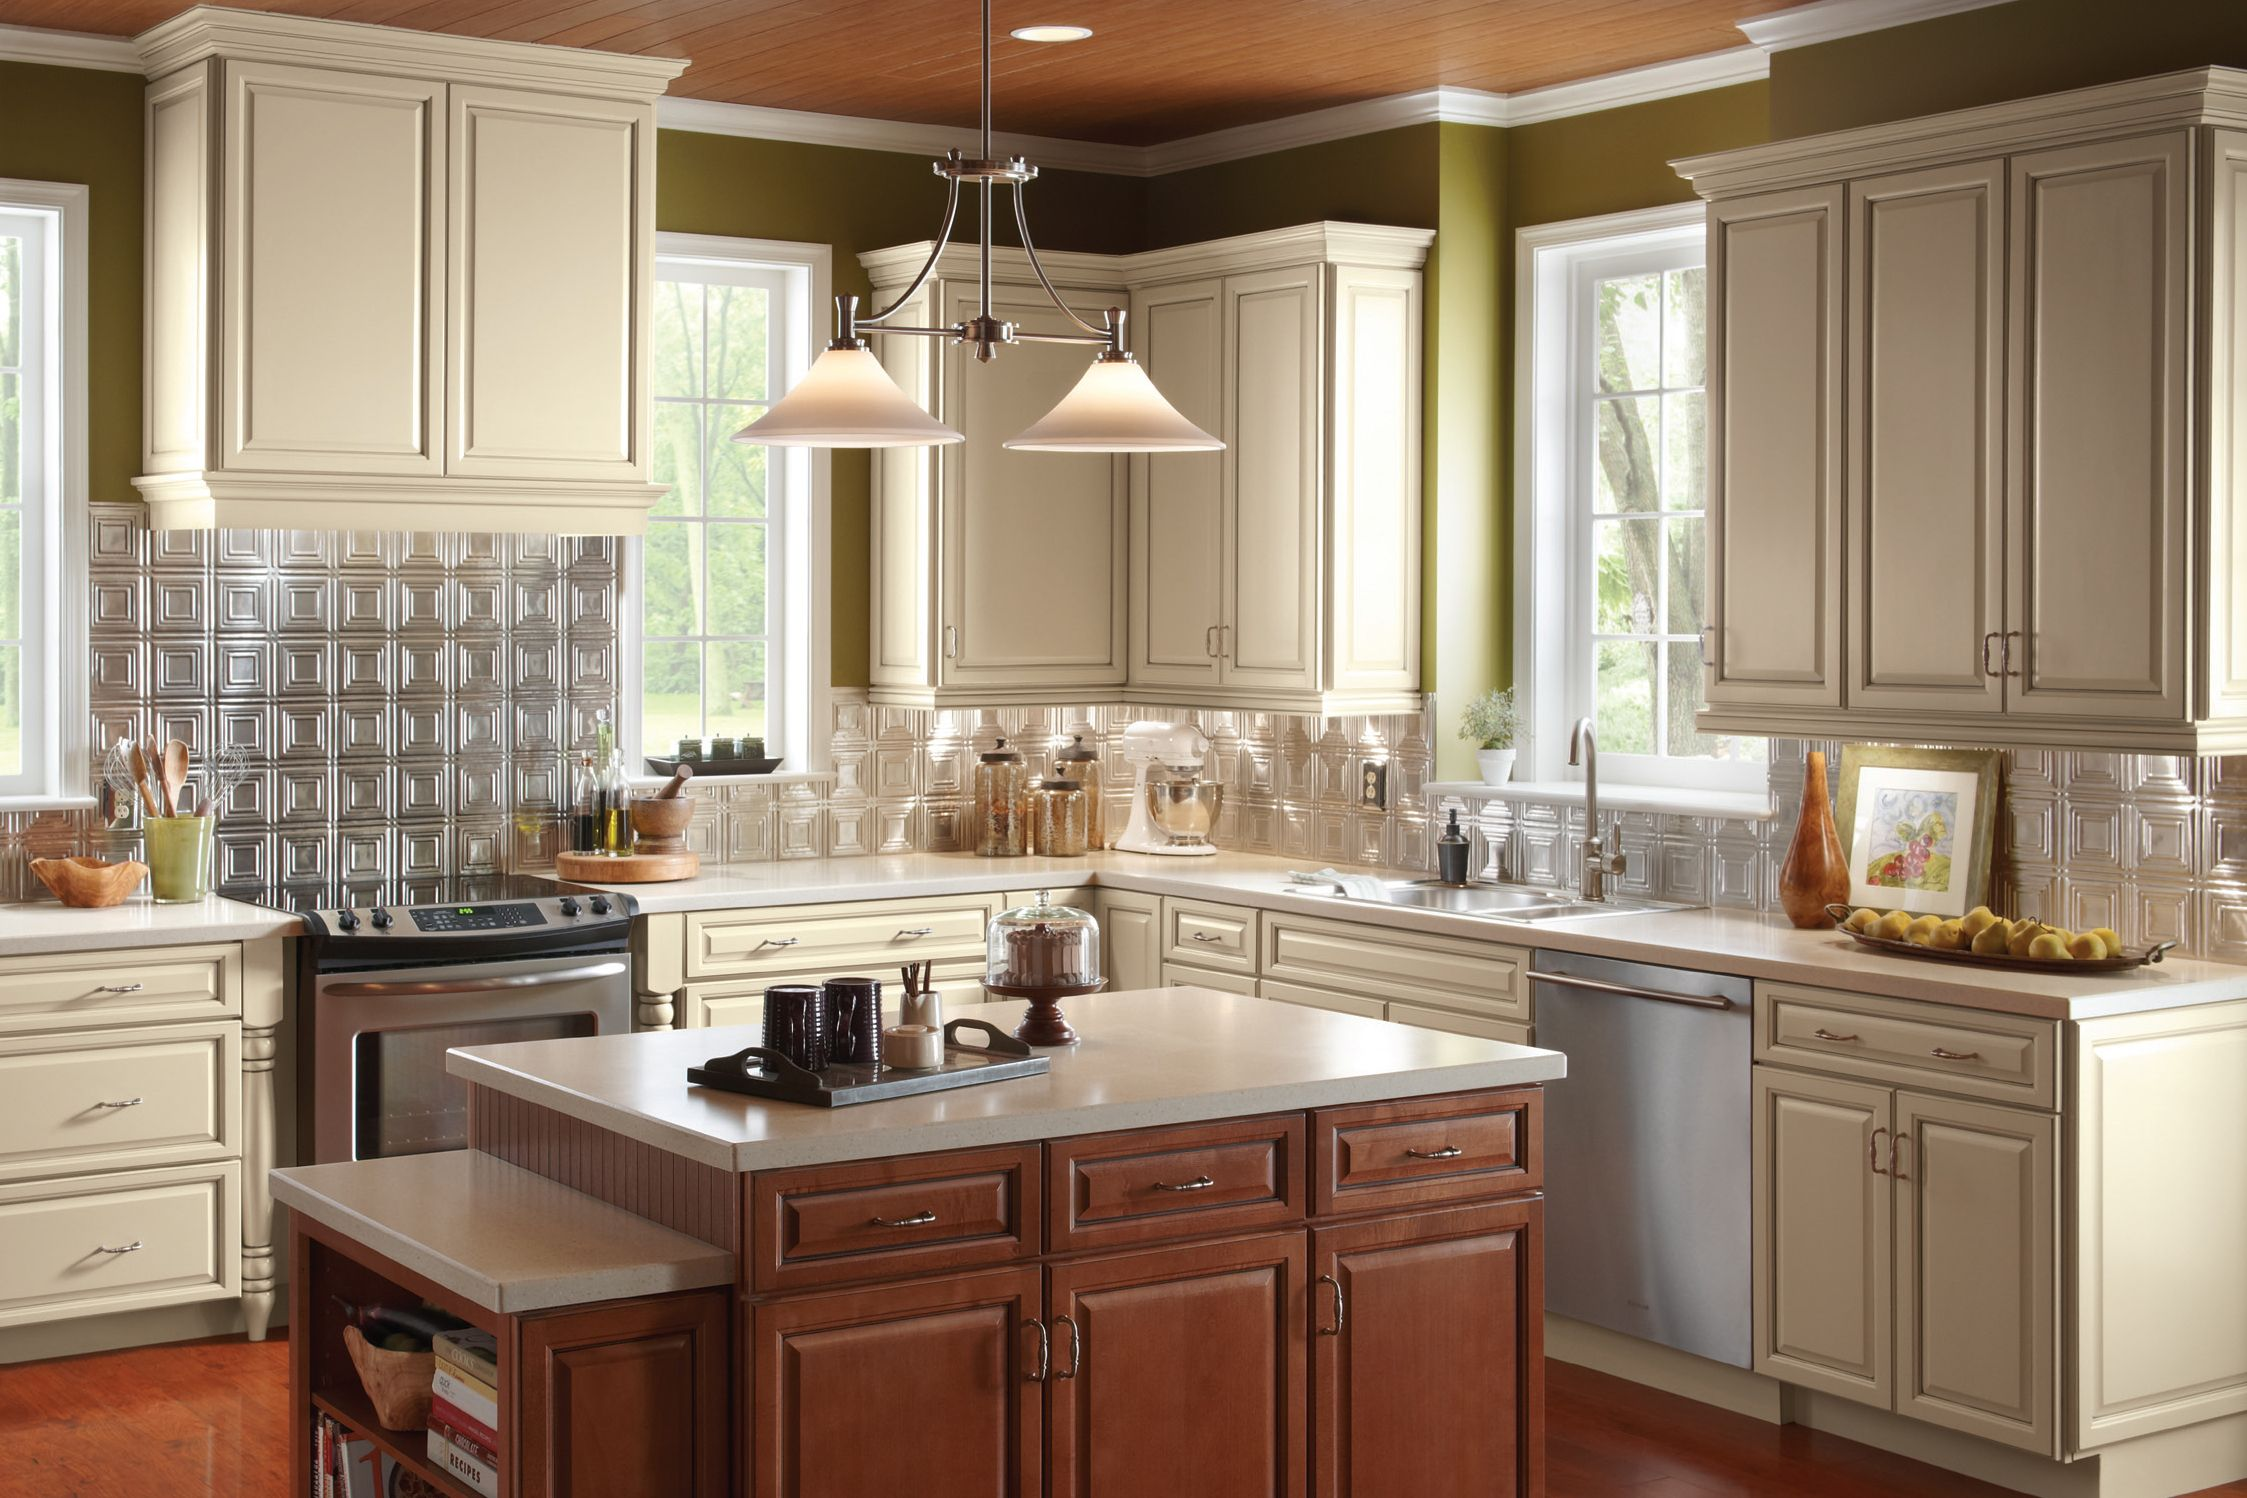 Lovely Kitchen Design With Armstrong Cabinets Plus White Countertop Plus Pretty Pendant Lamp Kitchen Cabinets Brands Kitchen Cabinets Kitchen Cabinets Reviews